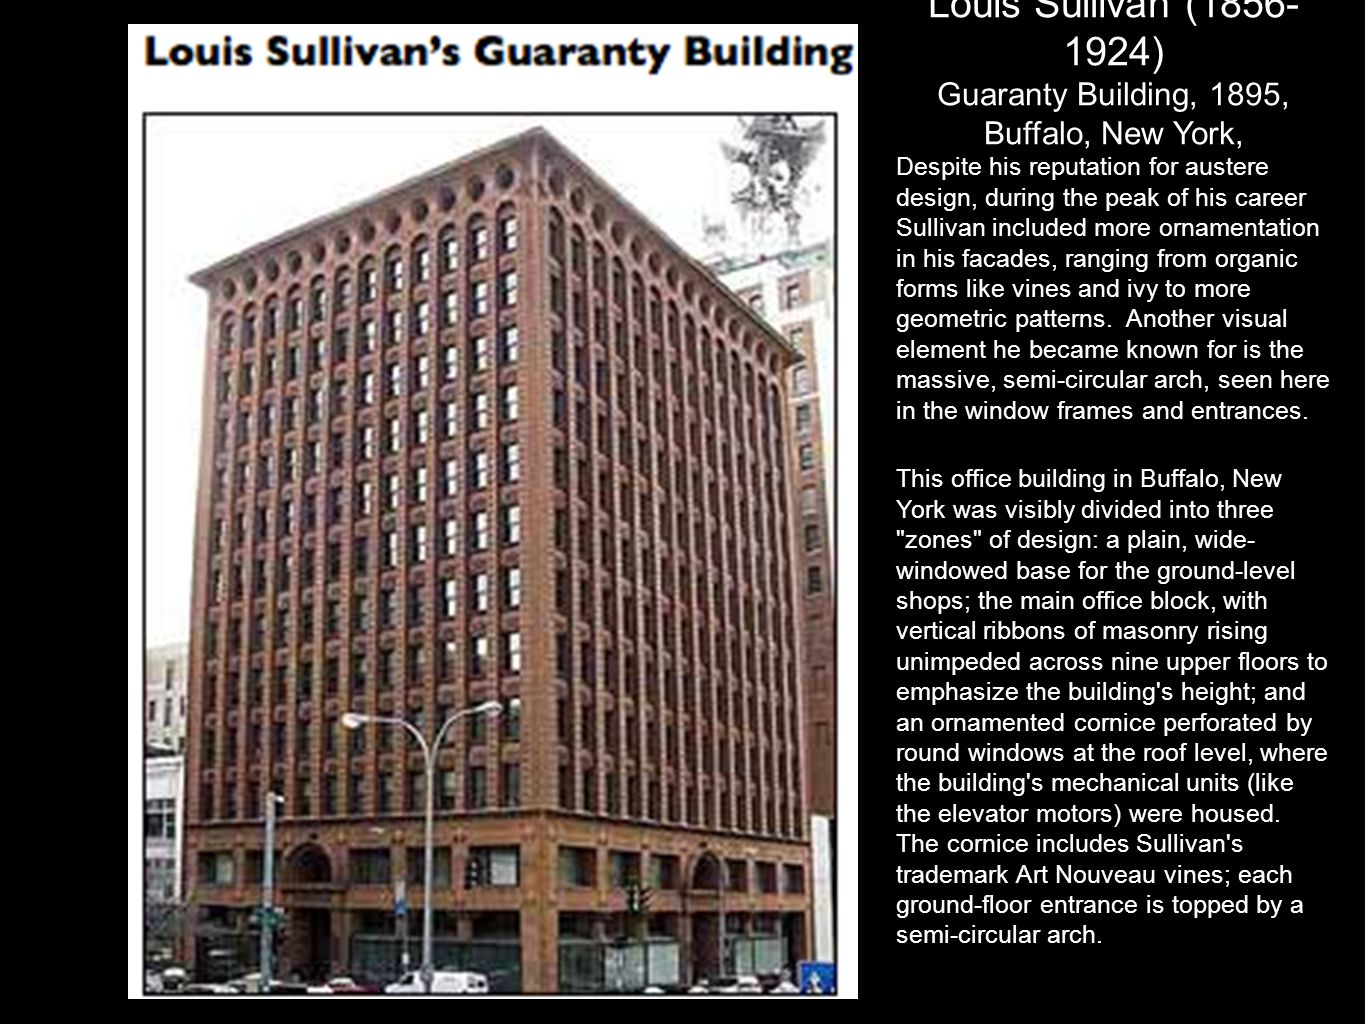 Guaranty Building, 1895, Buffalo, New York,